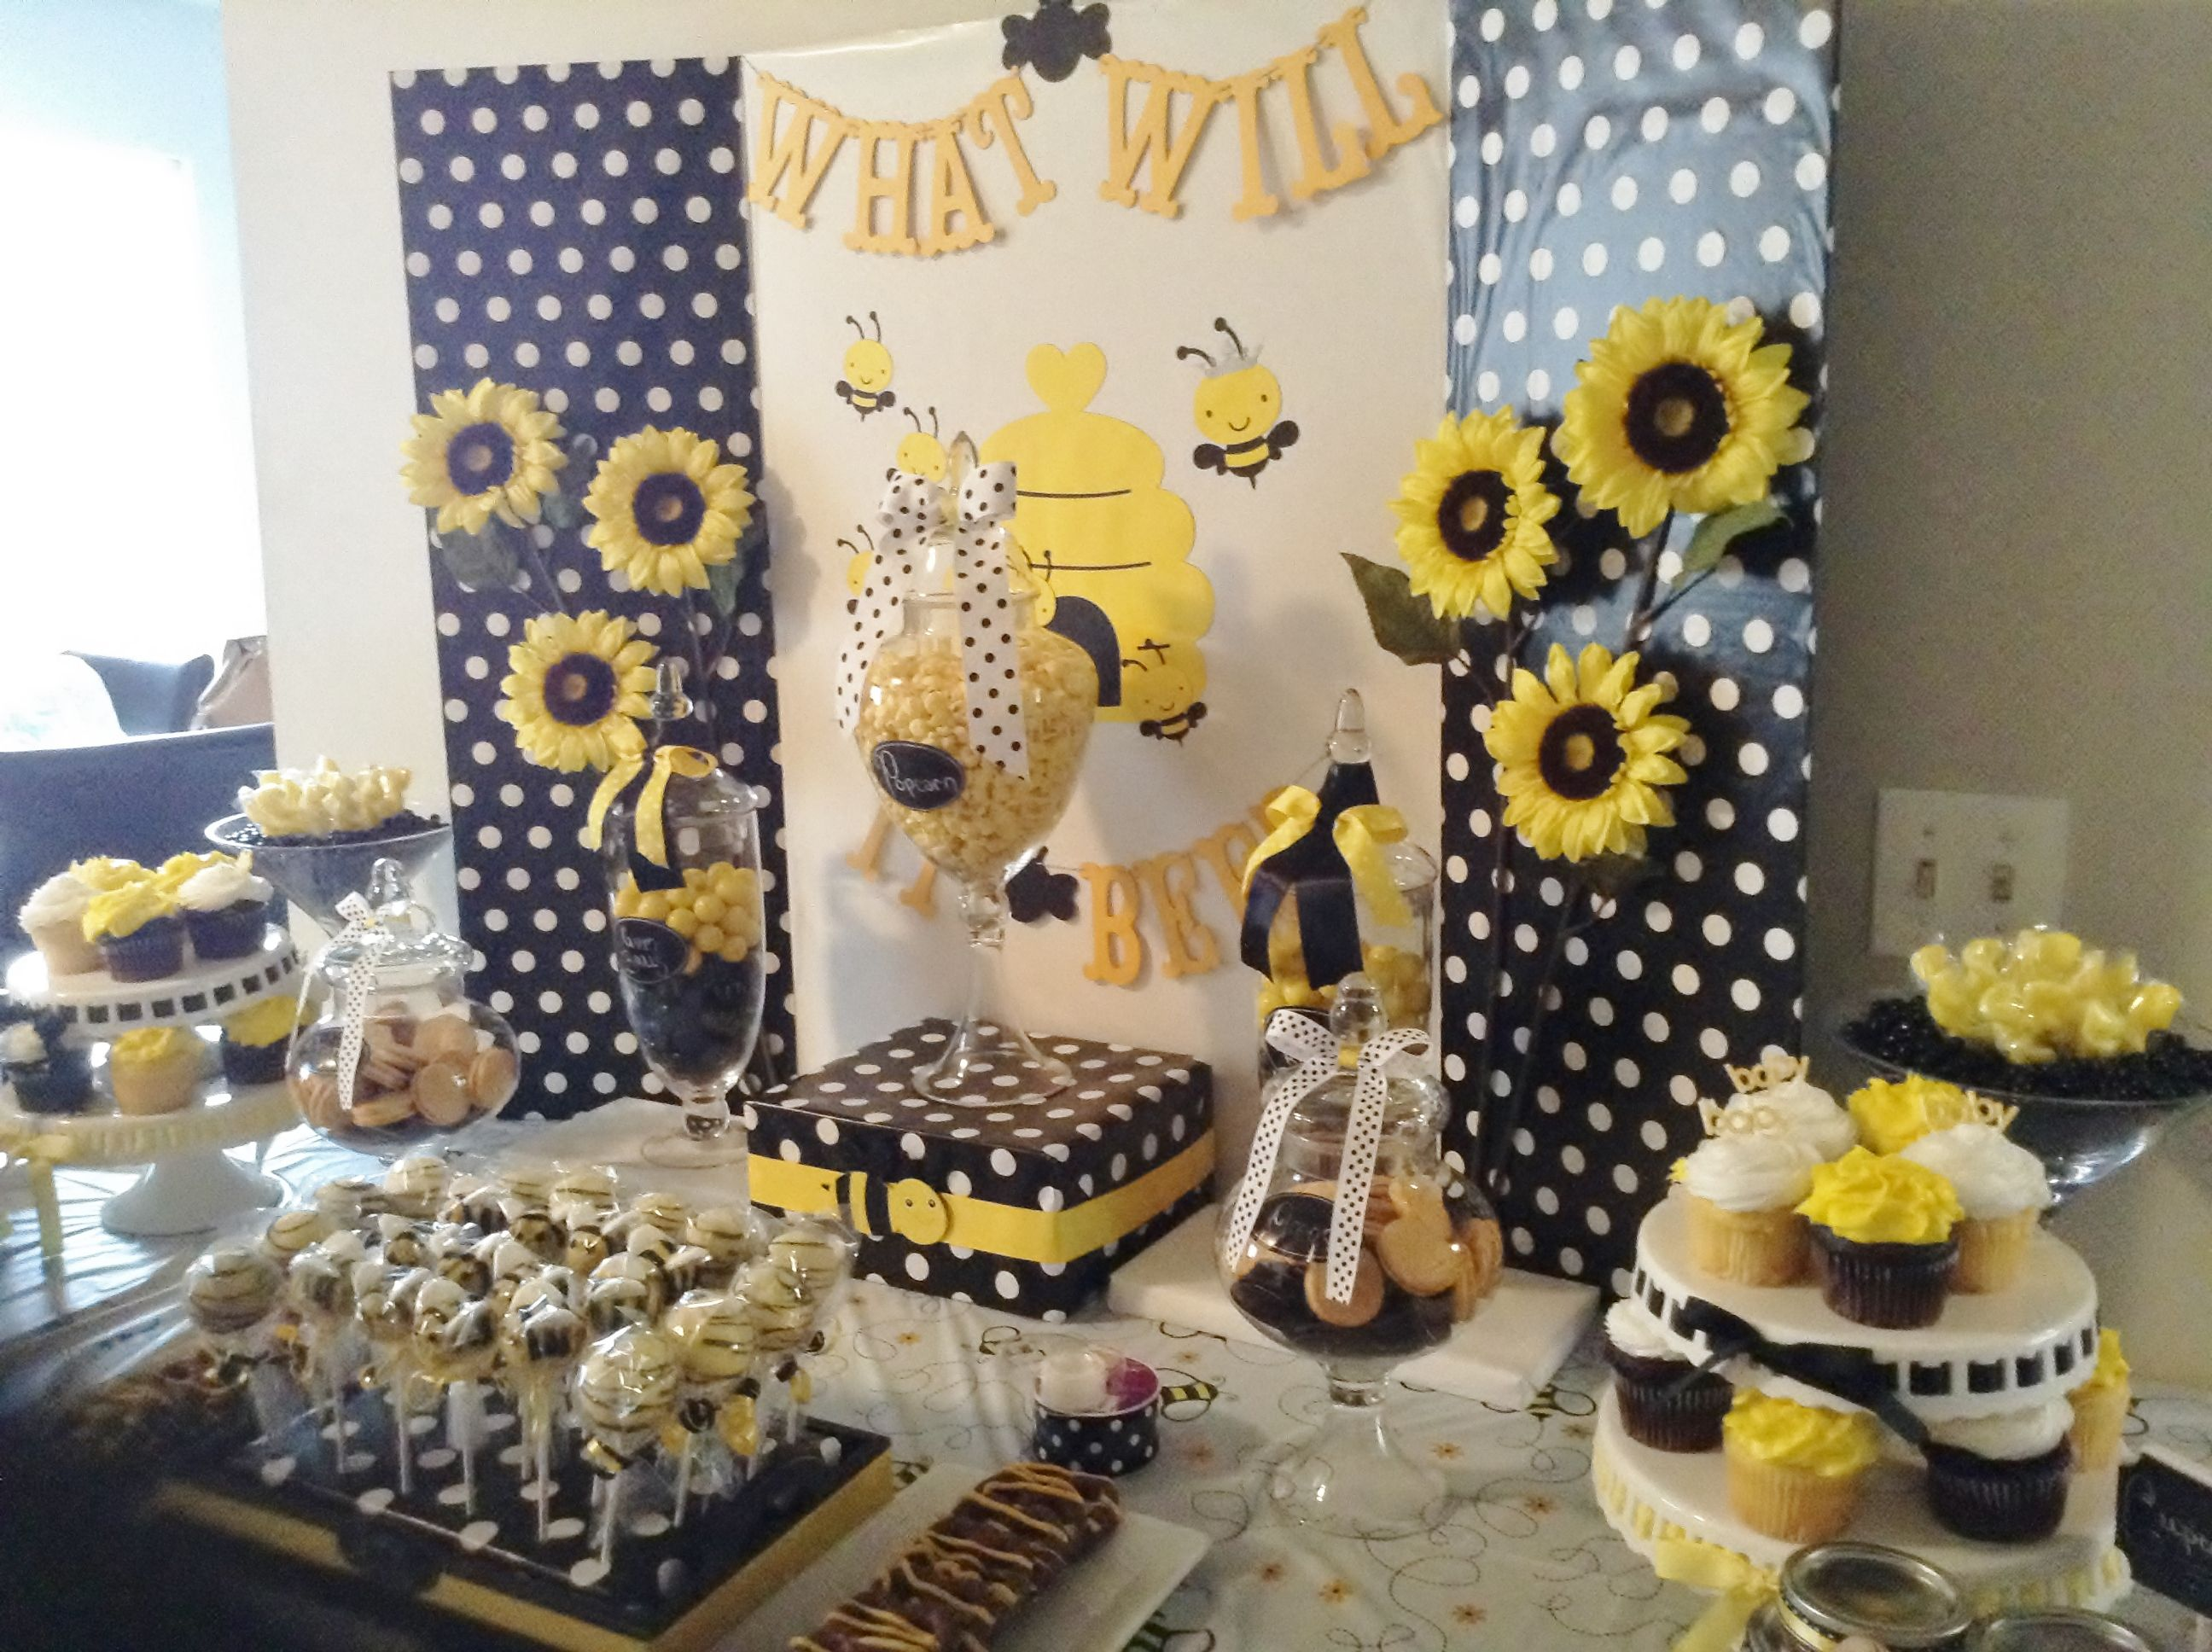 What Will It Bee, Gender Reveal, Bee Party, Bumble Bee Party